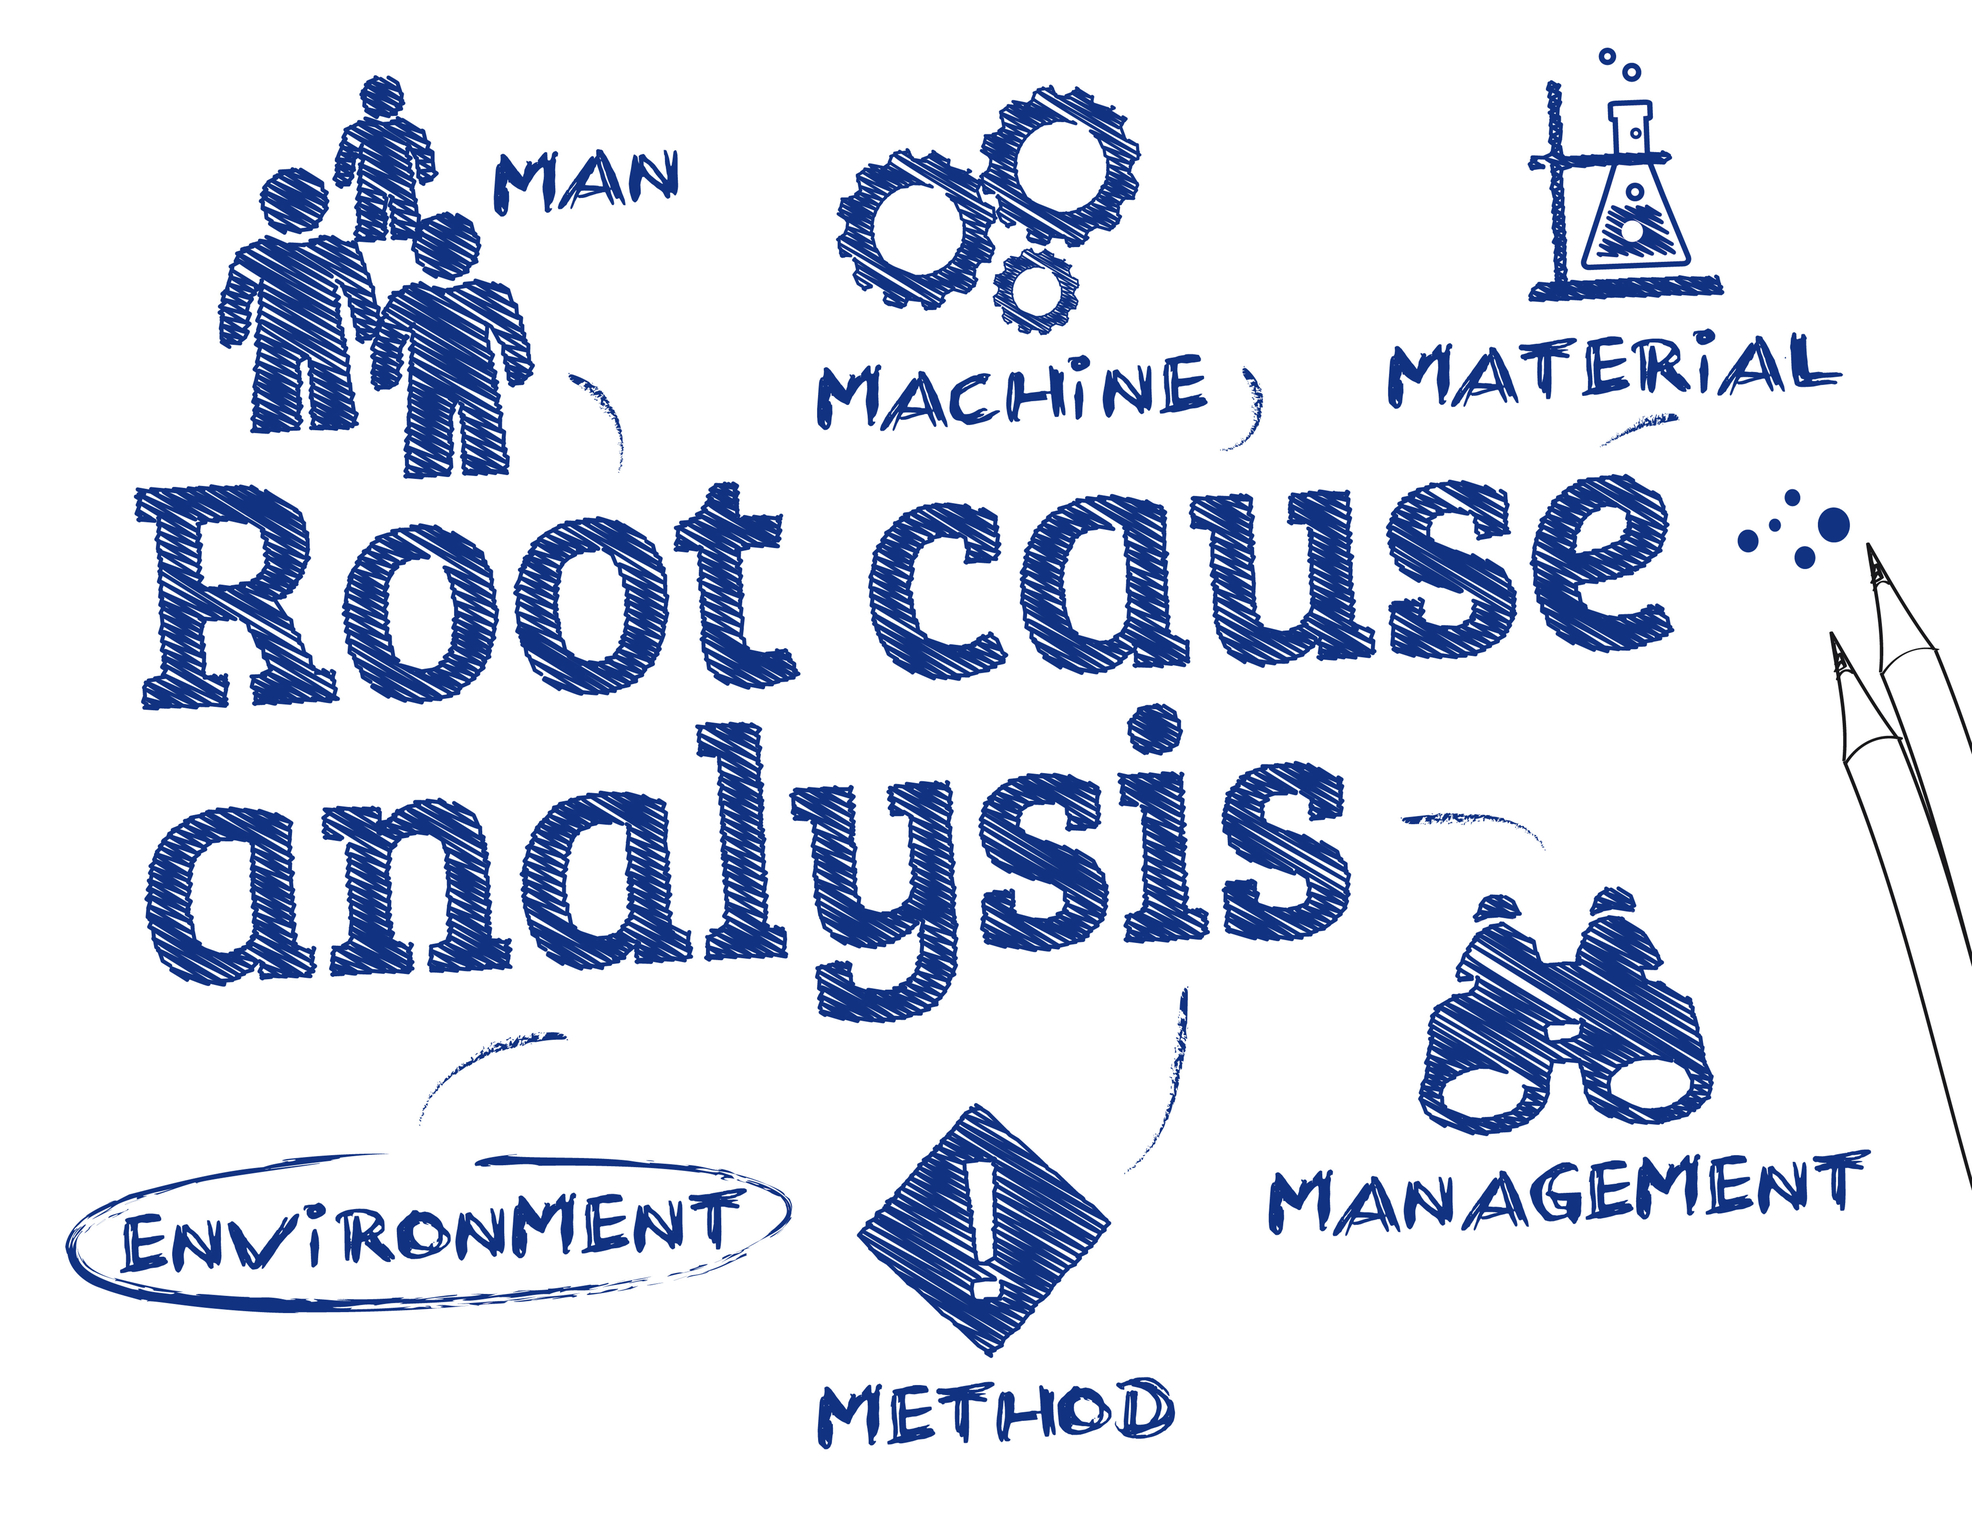 root cause analysis and rca The quality-one root cause analysis (rca) online overview is completely interactive with audio, video, animation and downloadable reference materials the rca online overview is perfect for a basic introduction to rca or for a subject matter review.